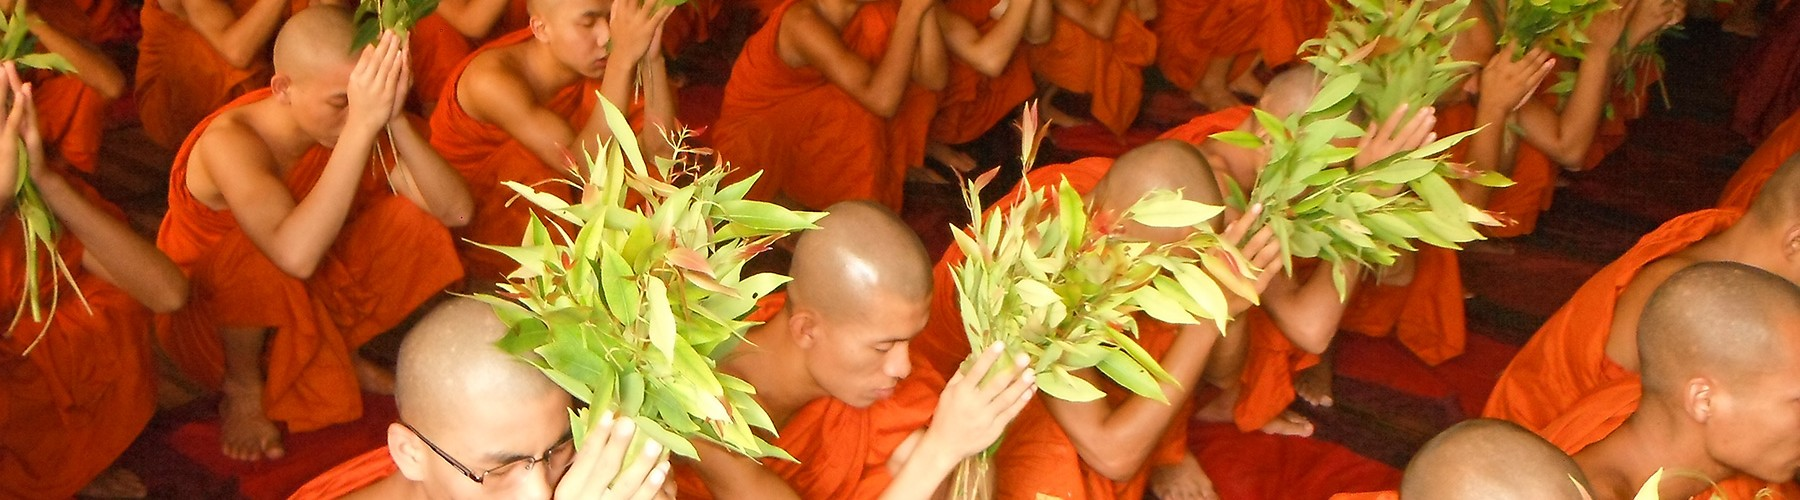 450 Monks and Novices Undertaking Precepts for Vassa Rainy Season